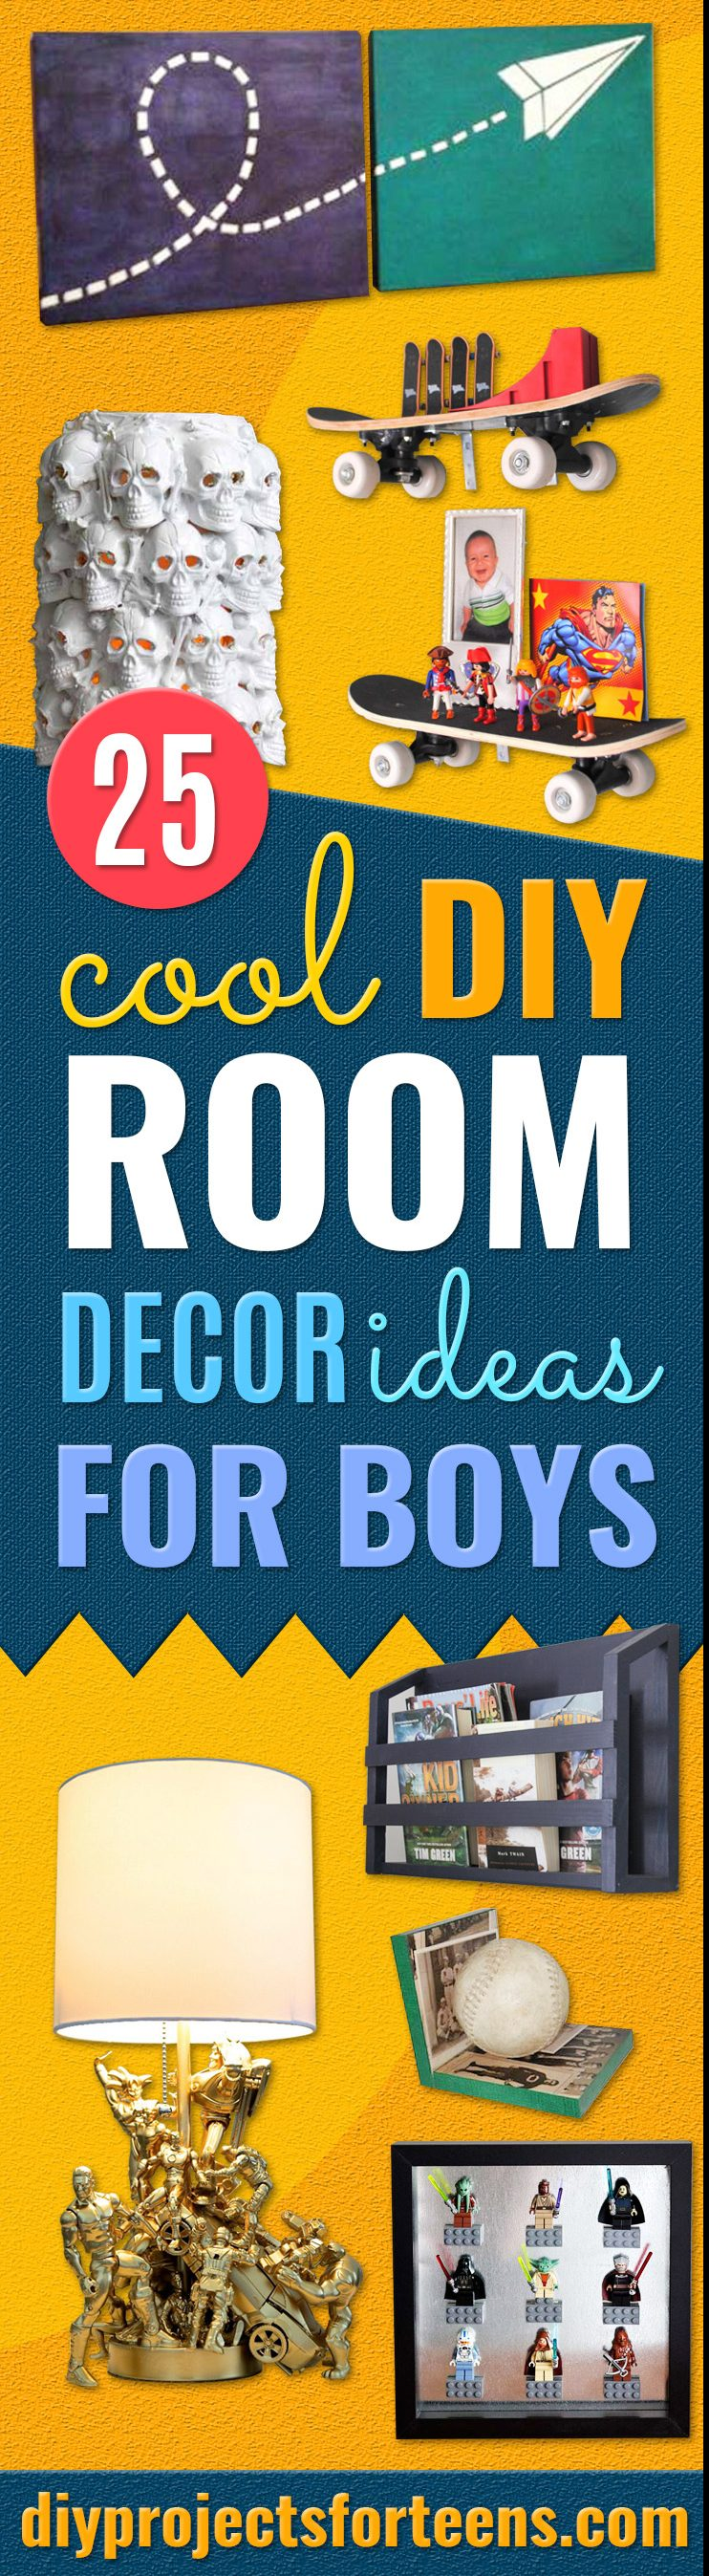 DIY Room Decor Ideas for Boys- Teen Boy Bedroom Decorating Ideas Pinterest - Cheap and Cool Ways to Decorate Boys Room in House - DYI Tutorial and Projects for Wall Art, Bedding, Tabletop decor, shelves, rugs, lamps